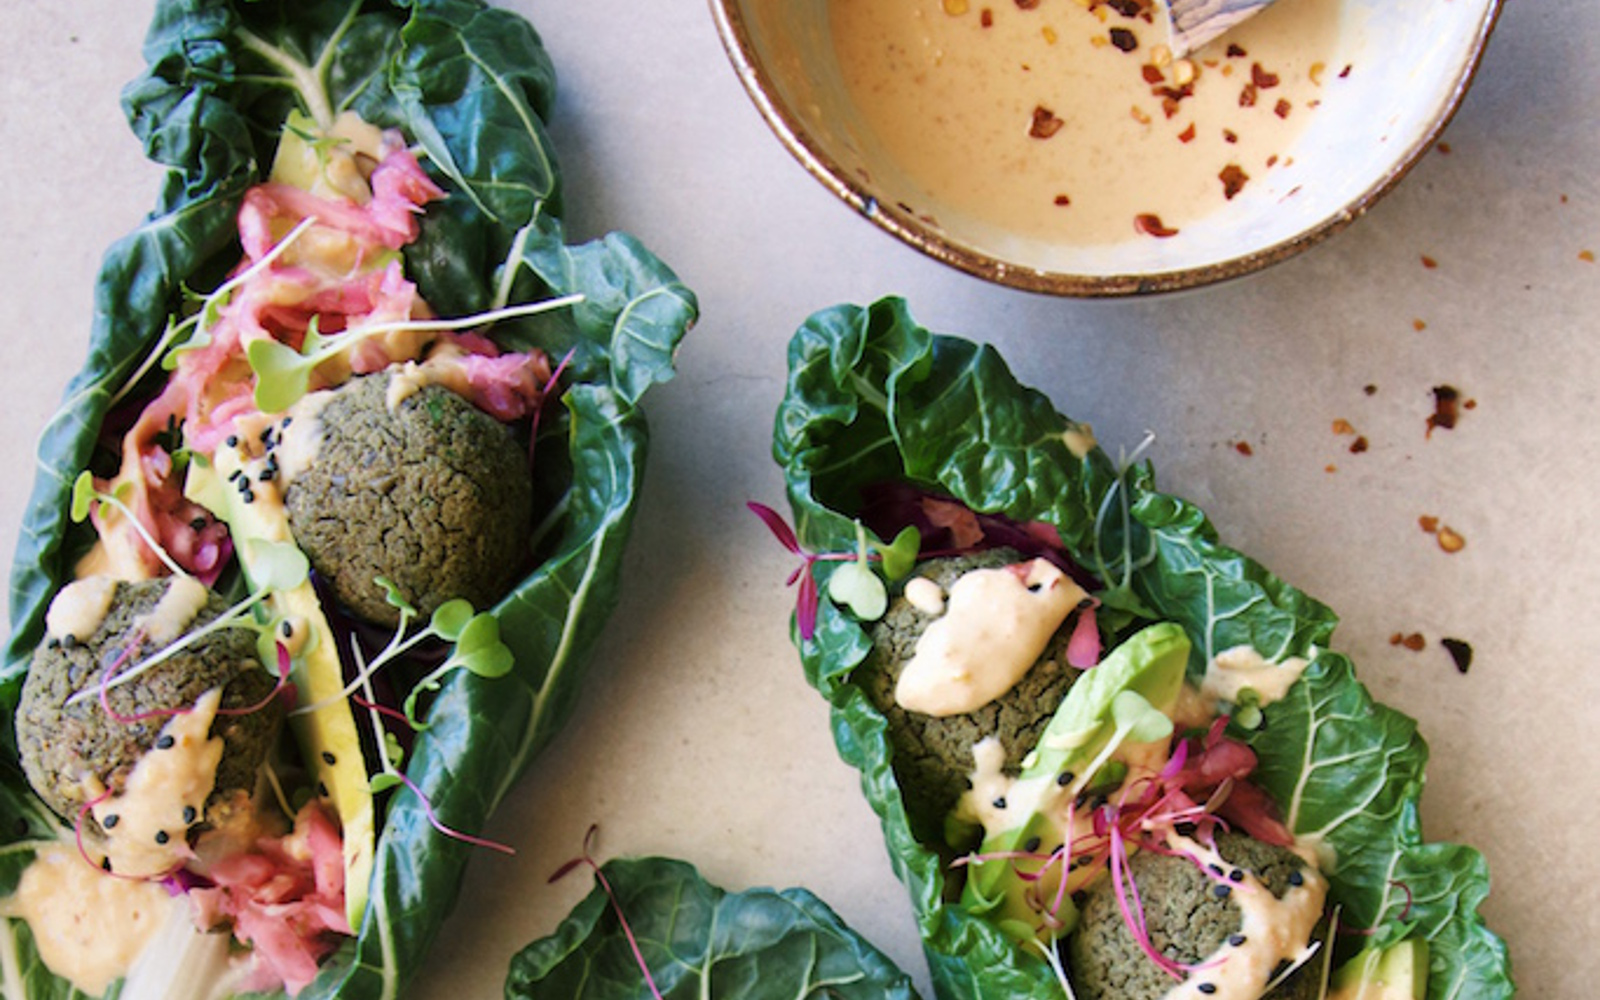 Lentil Ball Wraps With Spicy Peanut Sauce